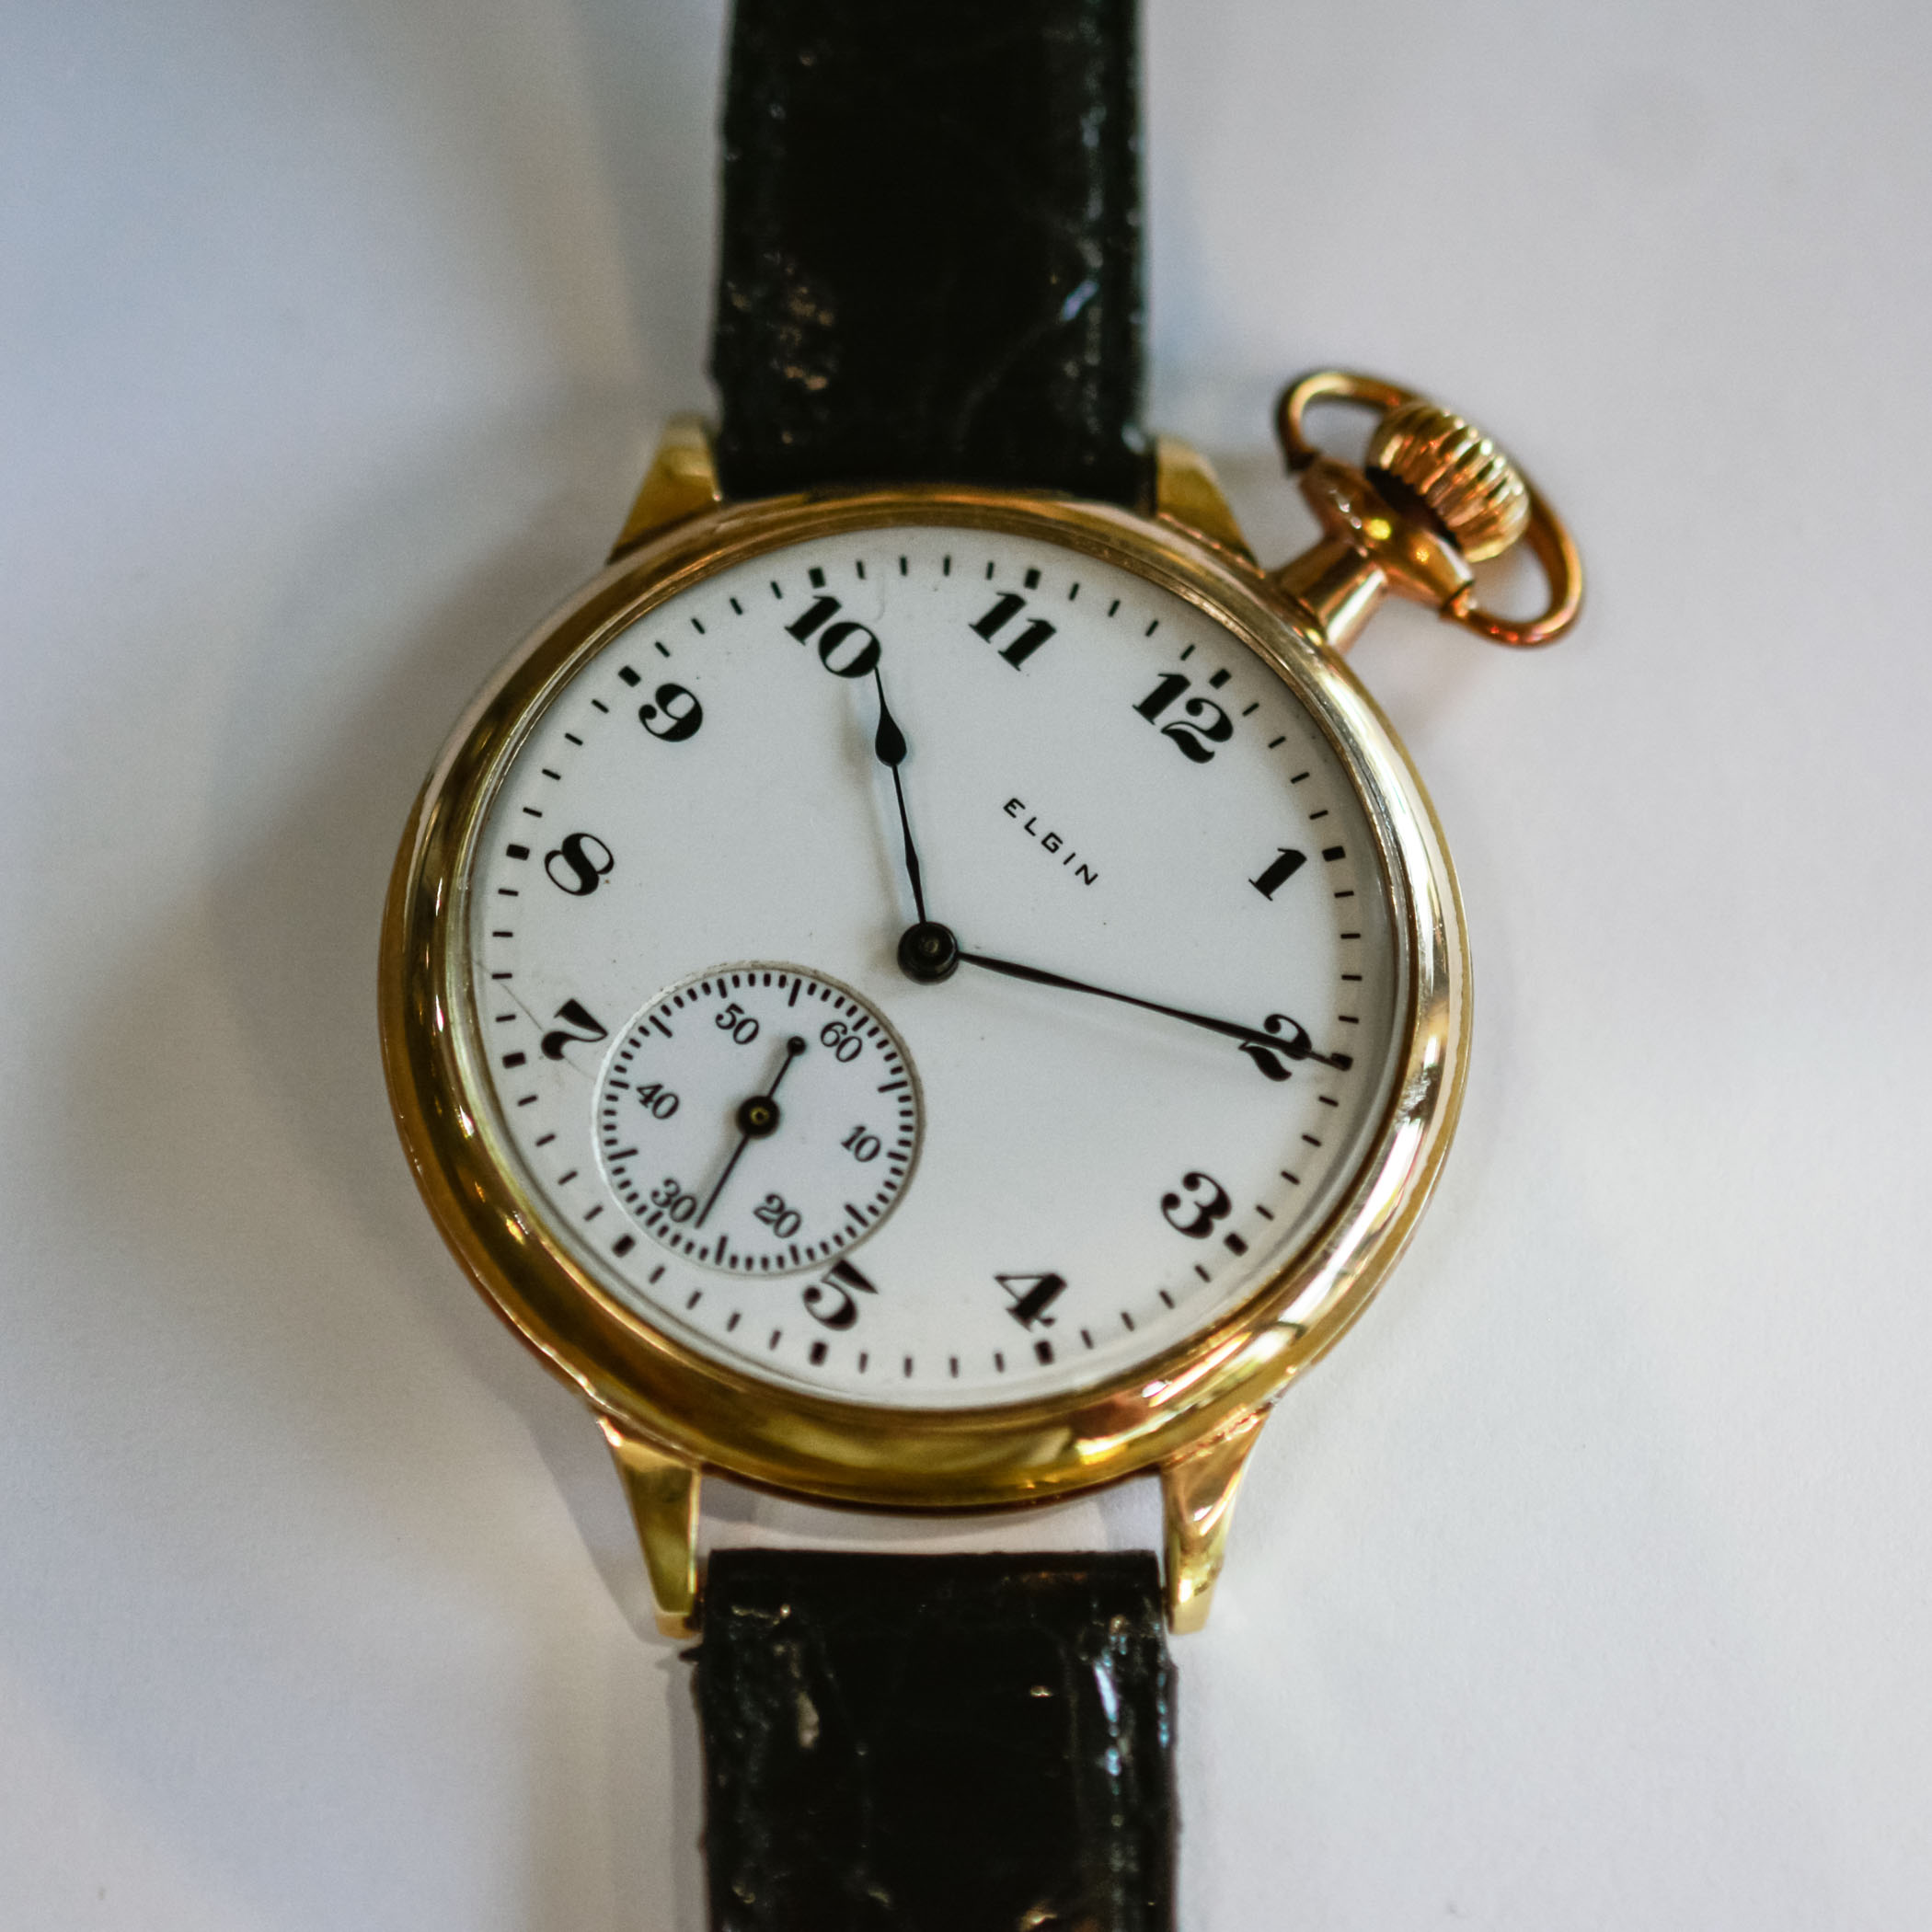 Elgin pocket watch conversion from 1912 with welded lugs